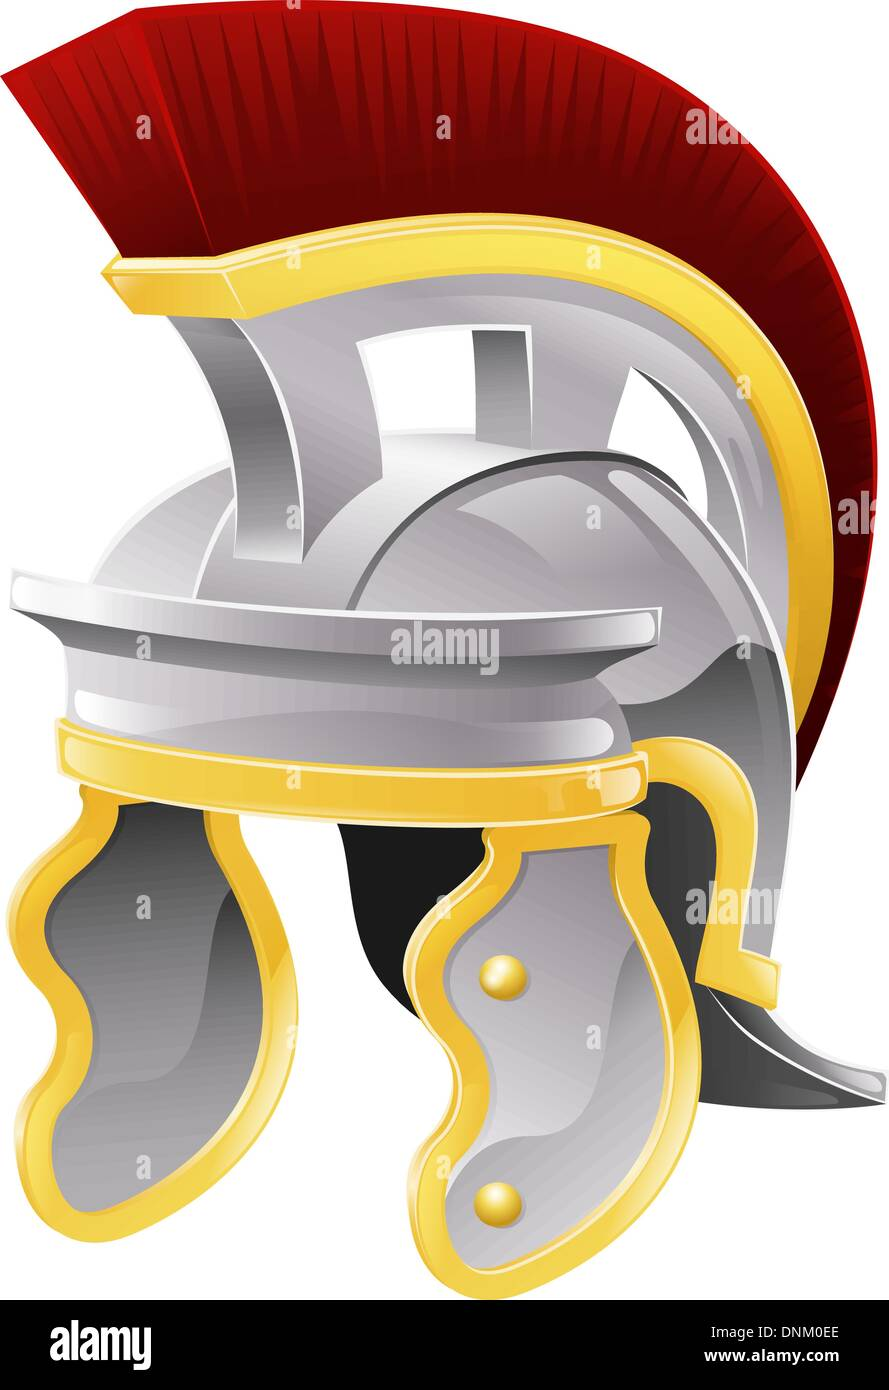 Illustration of Roman soldier's galea style helmet with red crest - Stock Vector